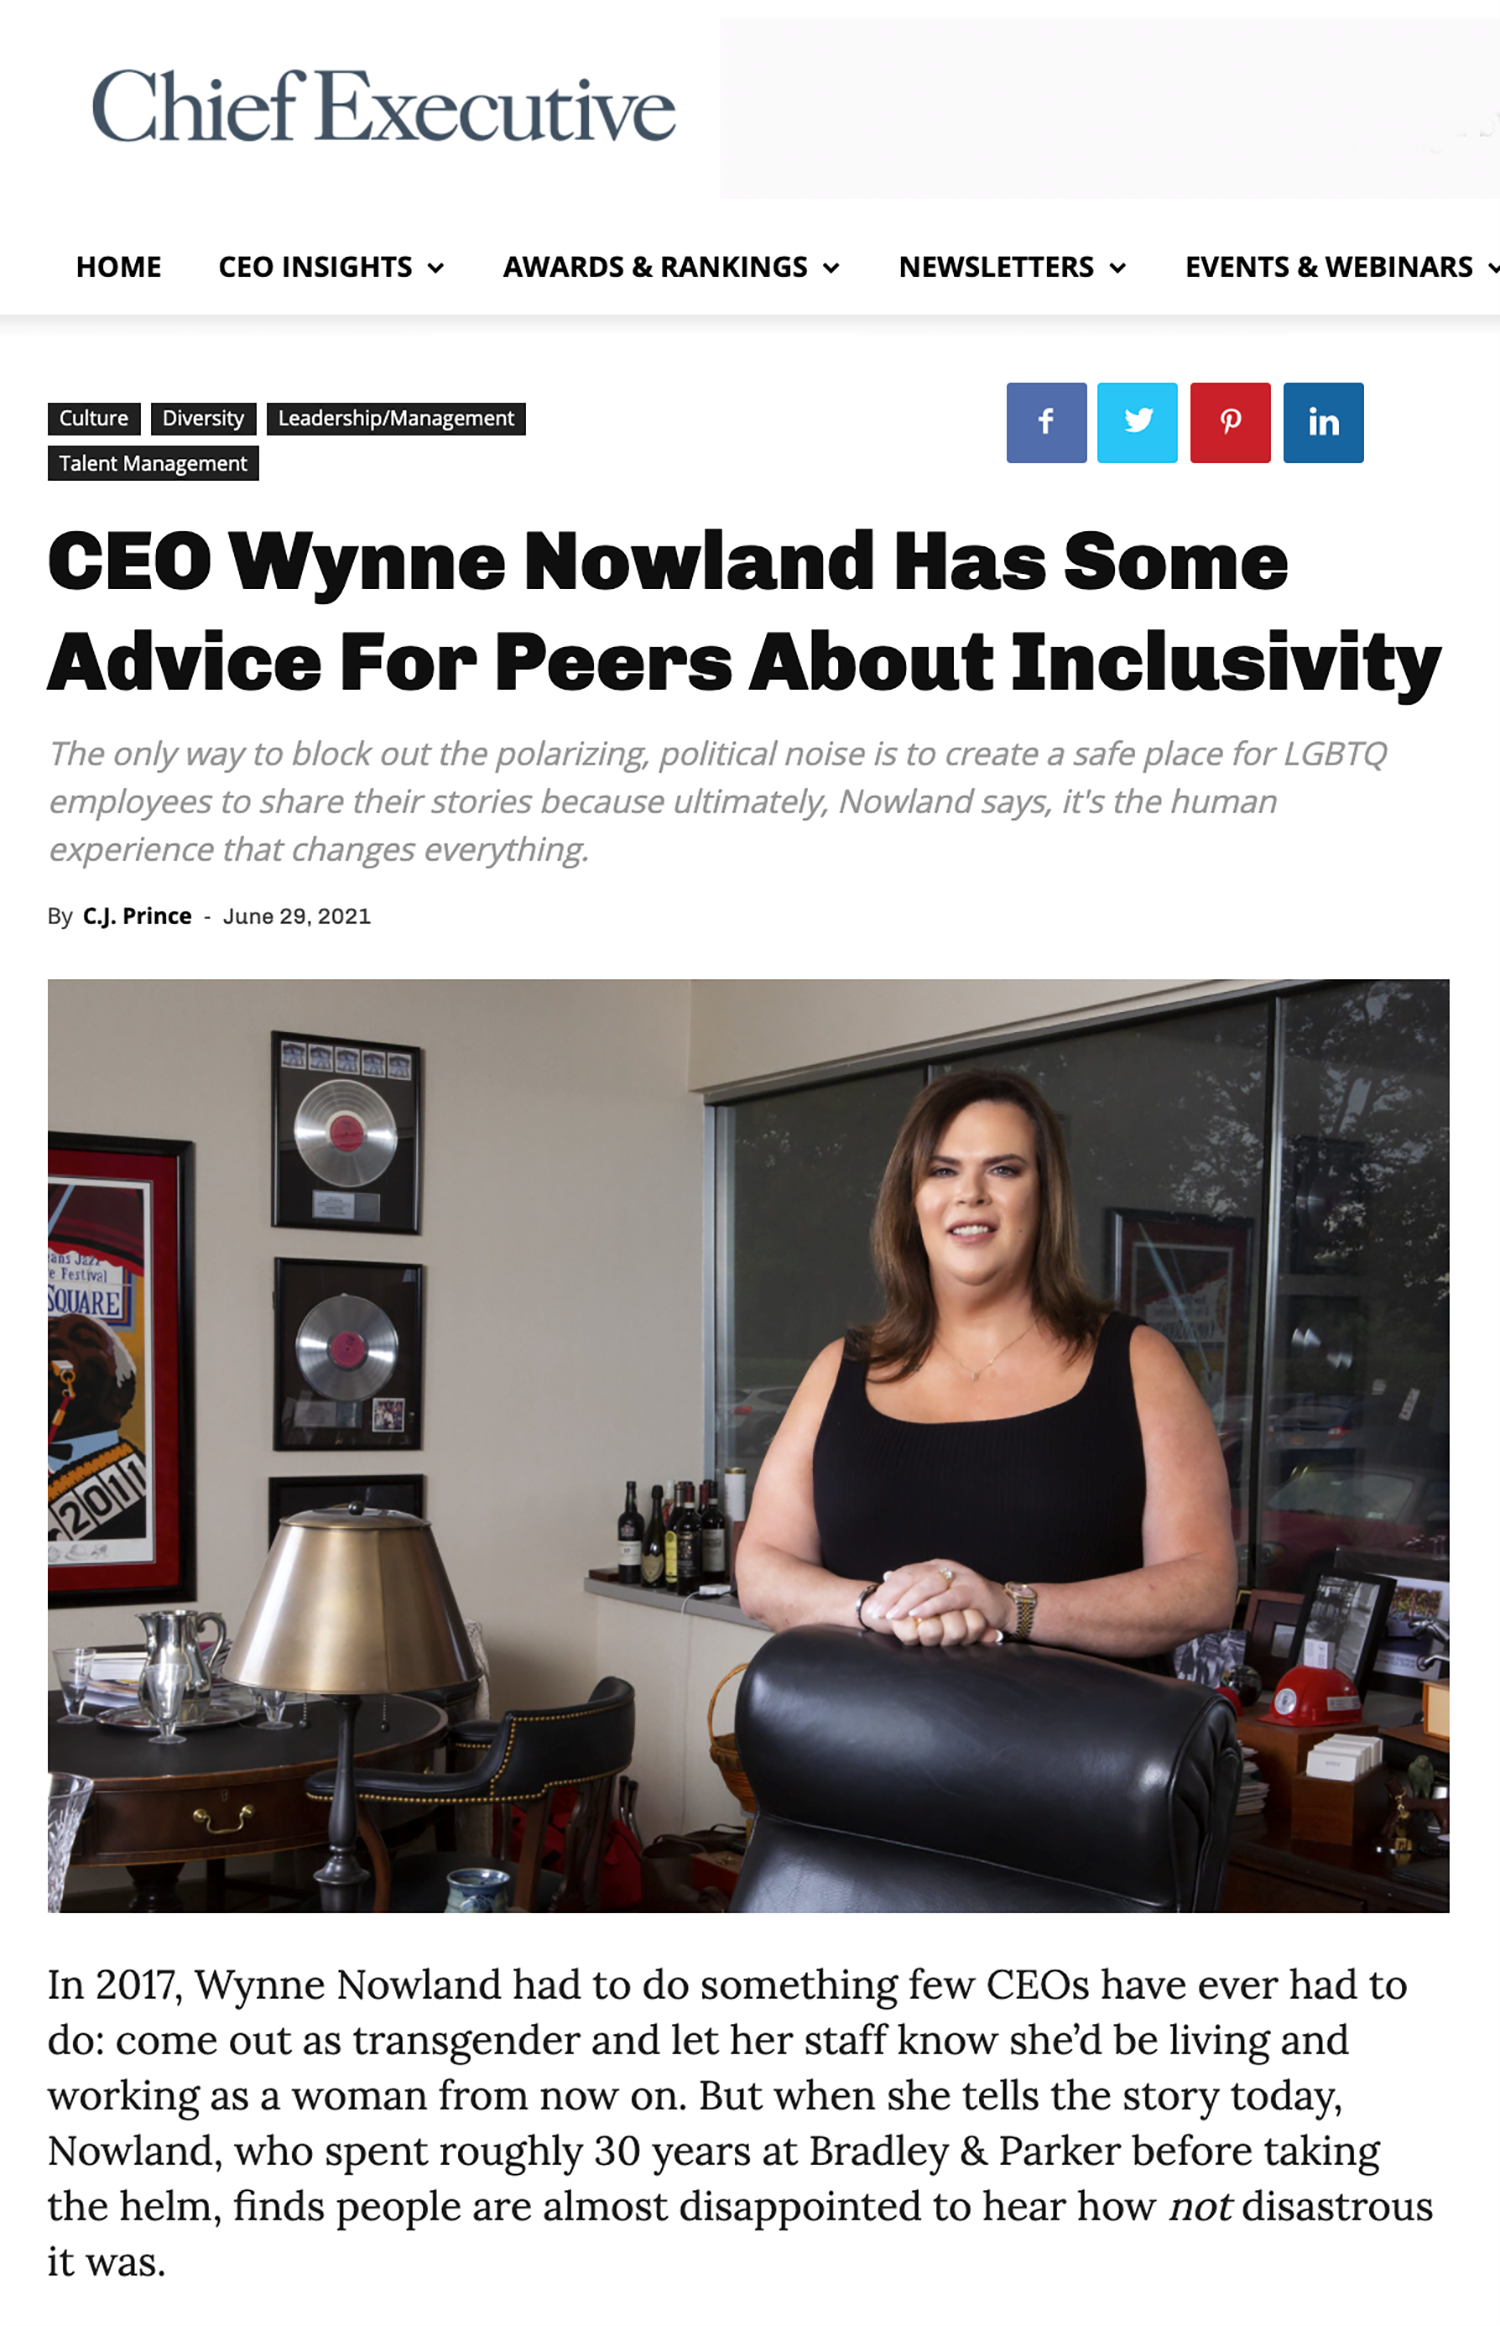 chief-executive-publishes-feature-article-on-ceo-wynne-nowland